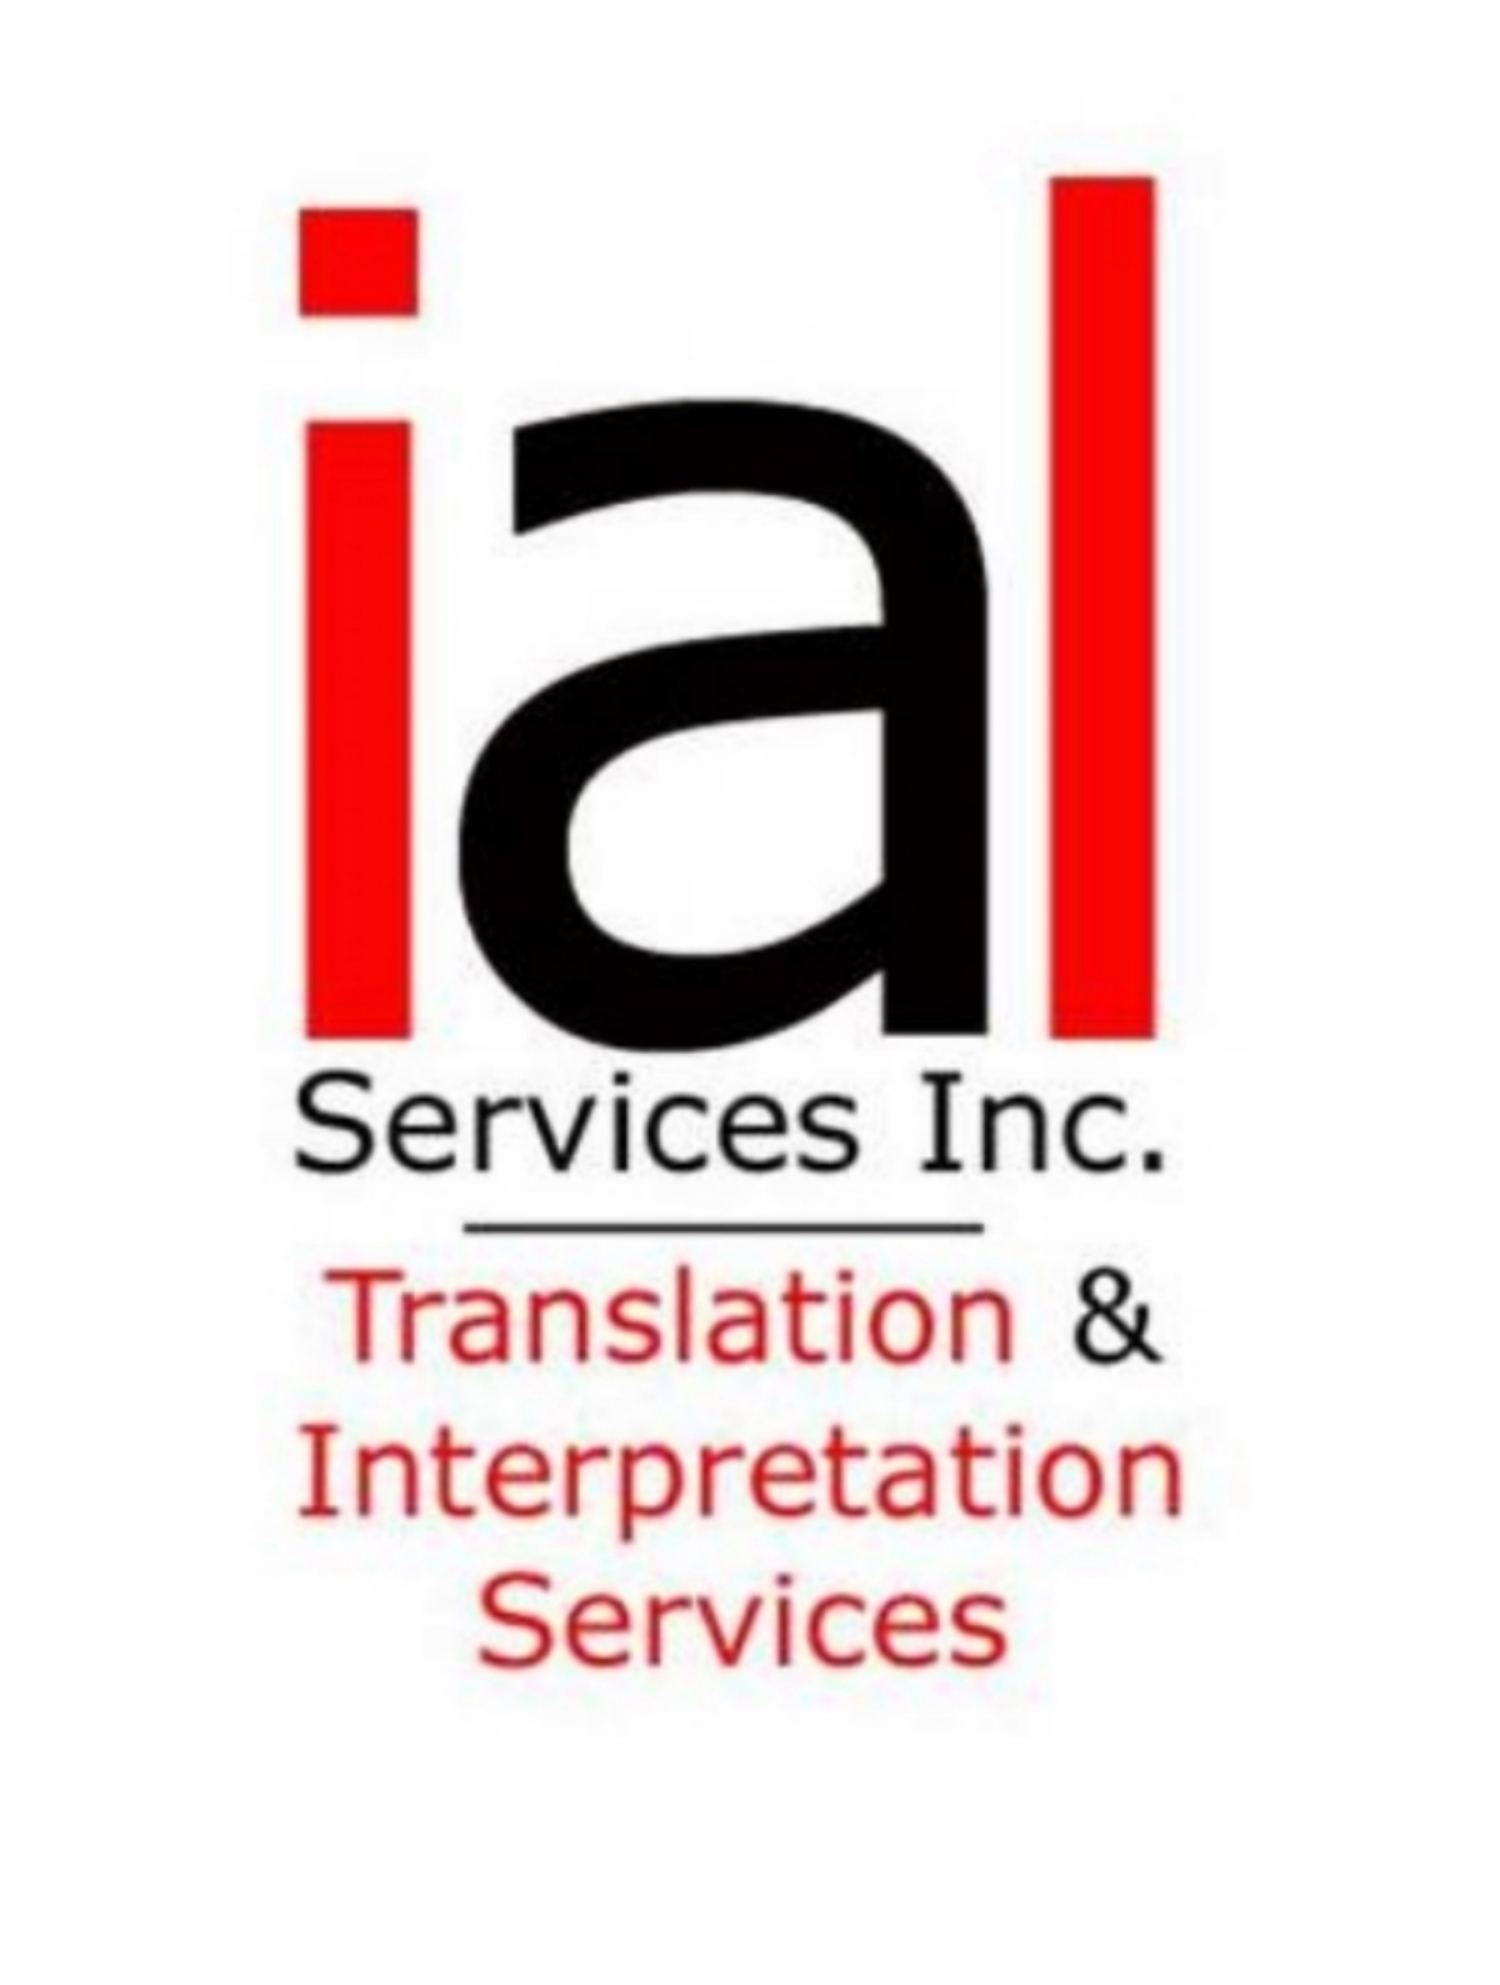 IAL Services